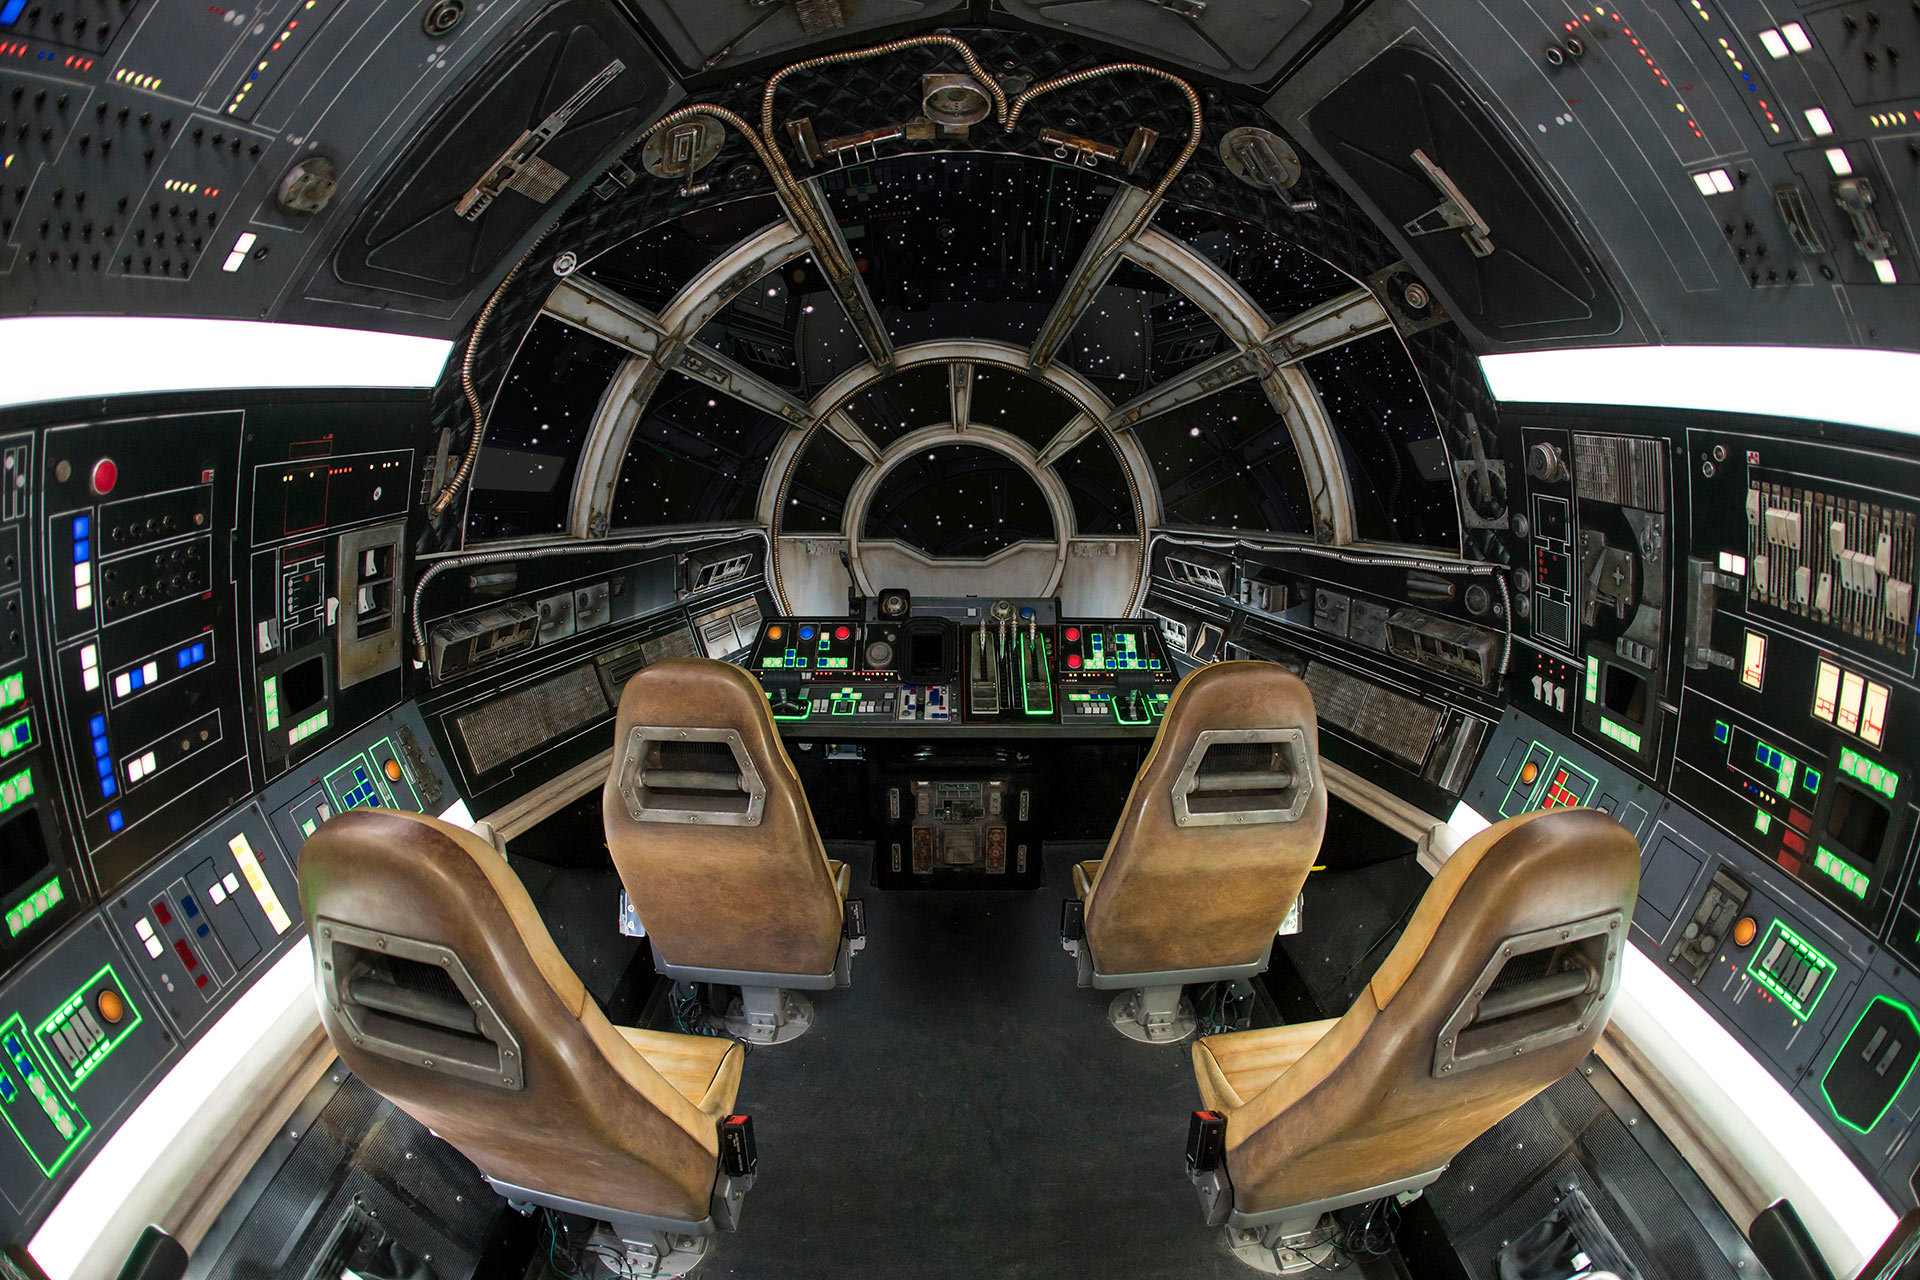 Inside Millennium Falcon: Smugglers Run, guests will take the controls in one of three unique and critical roles aboard the fastest ship in the galaxy.